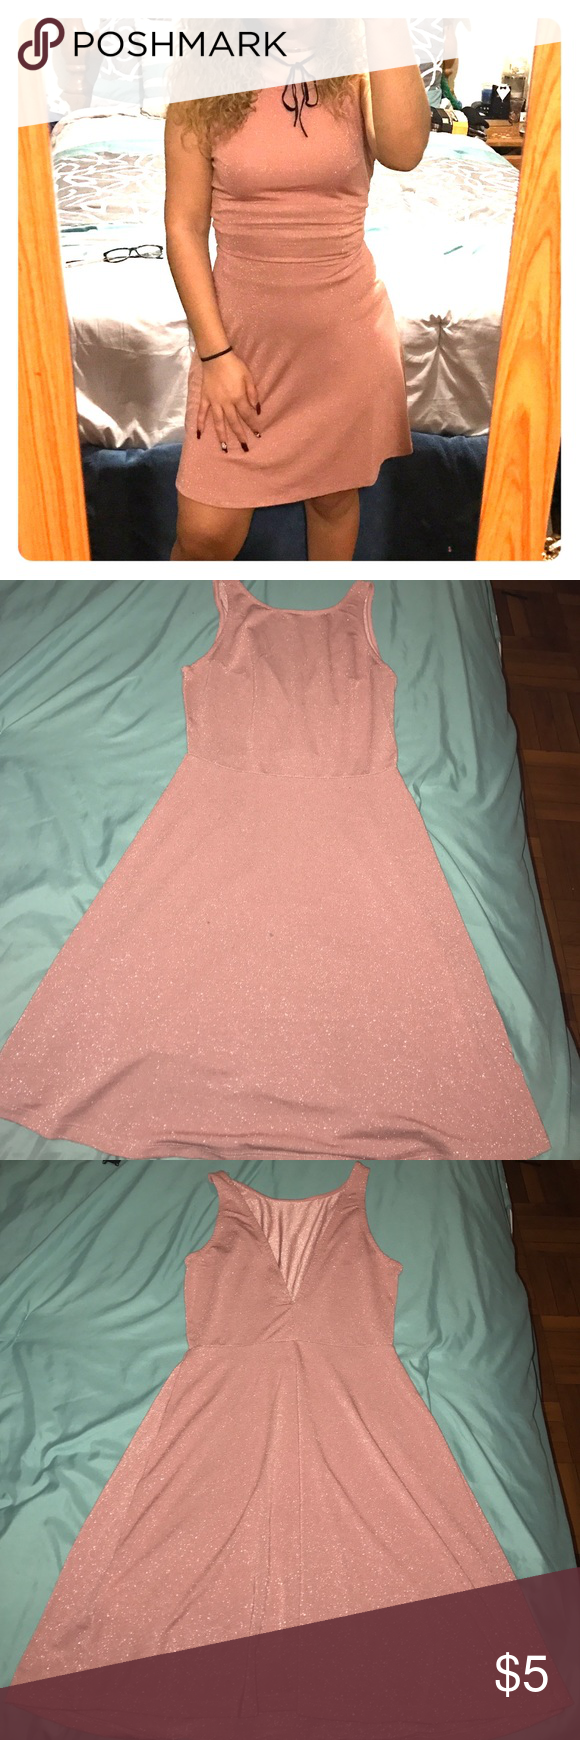 H&M rose gold glitter dress Pre-owned skater dress. V cut open back Dresses Midi